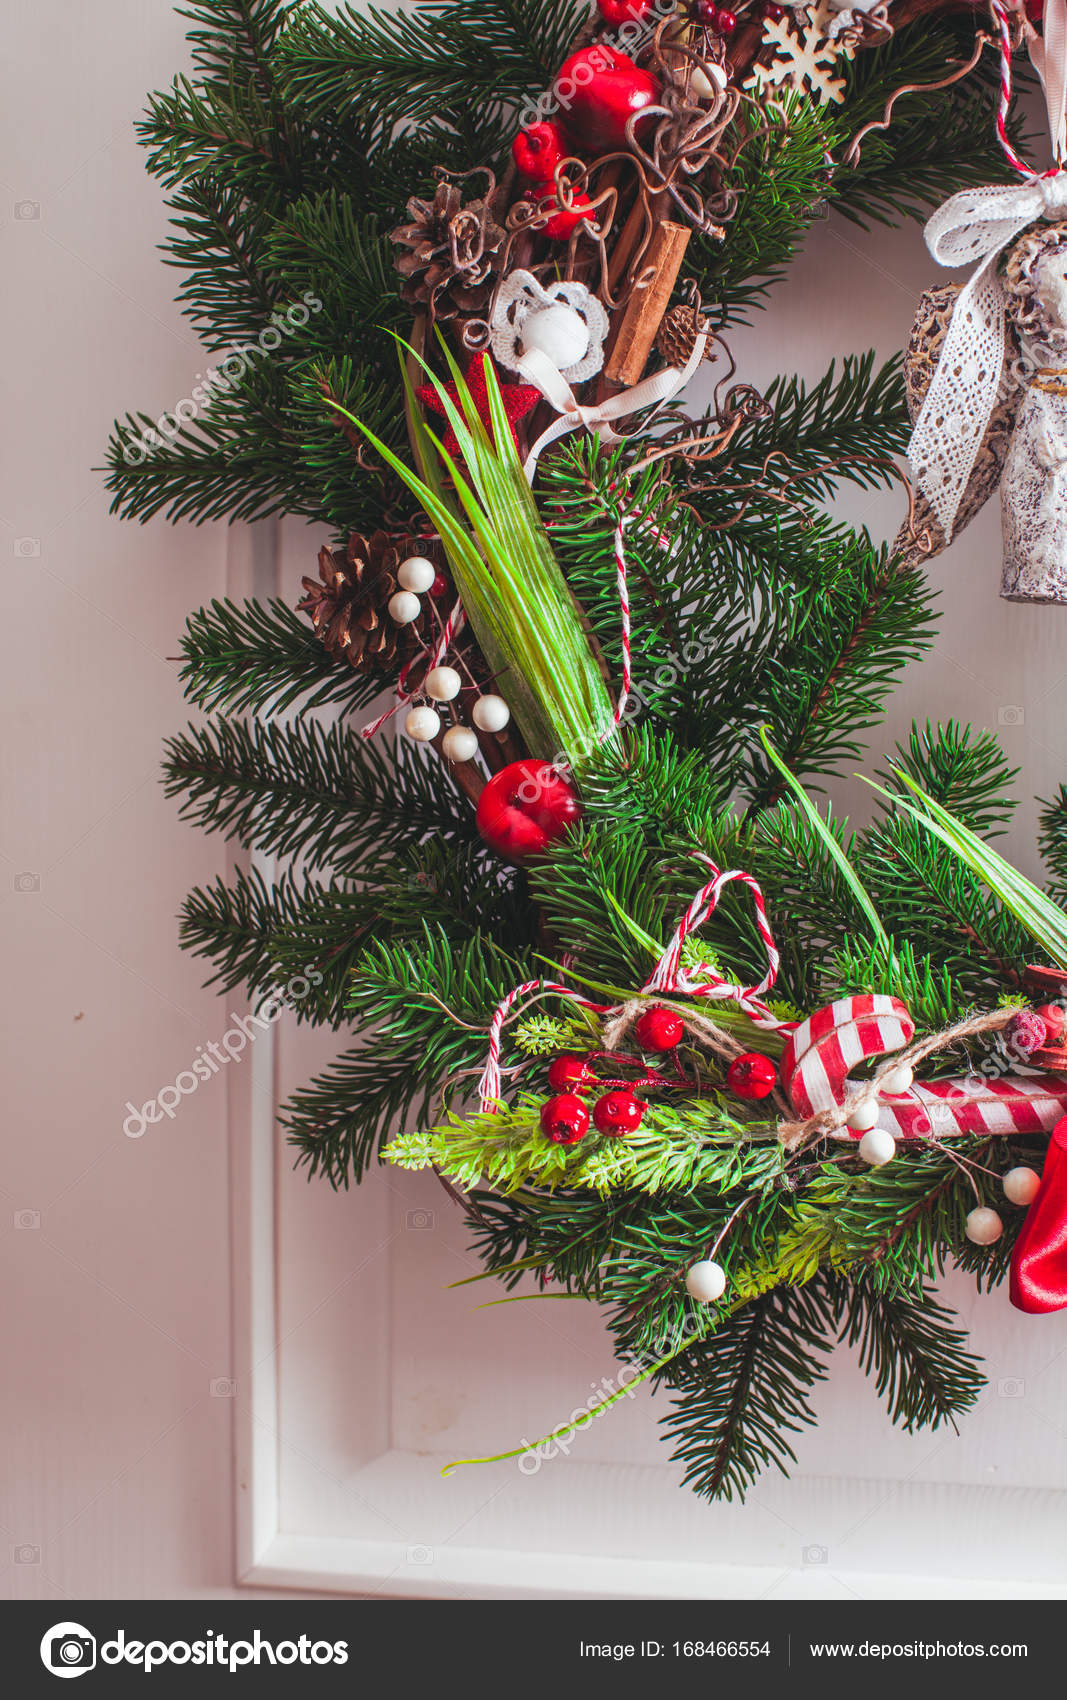 Red And White Christmas Wreath.Red And White Christmas Wreath Stock Photo C Oksixx 168466554